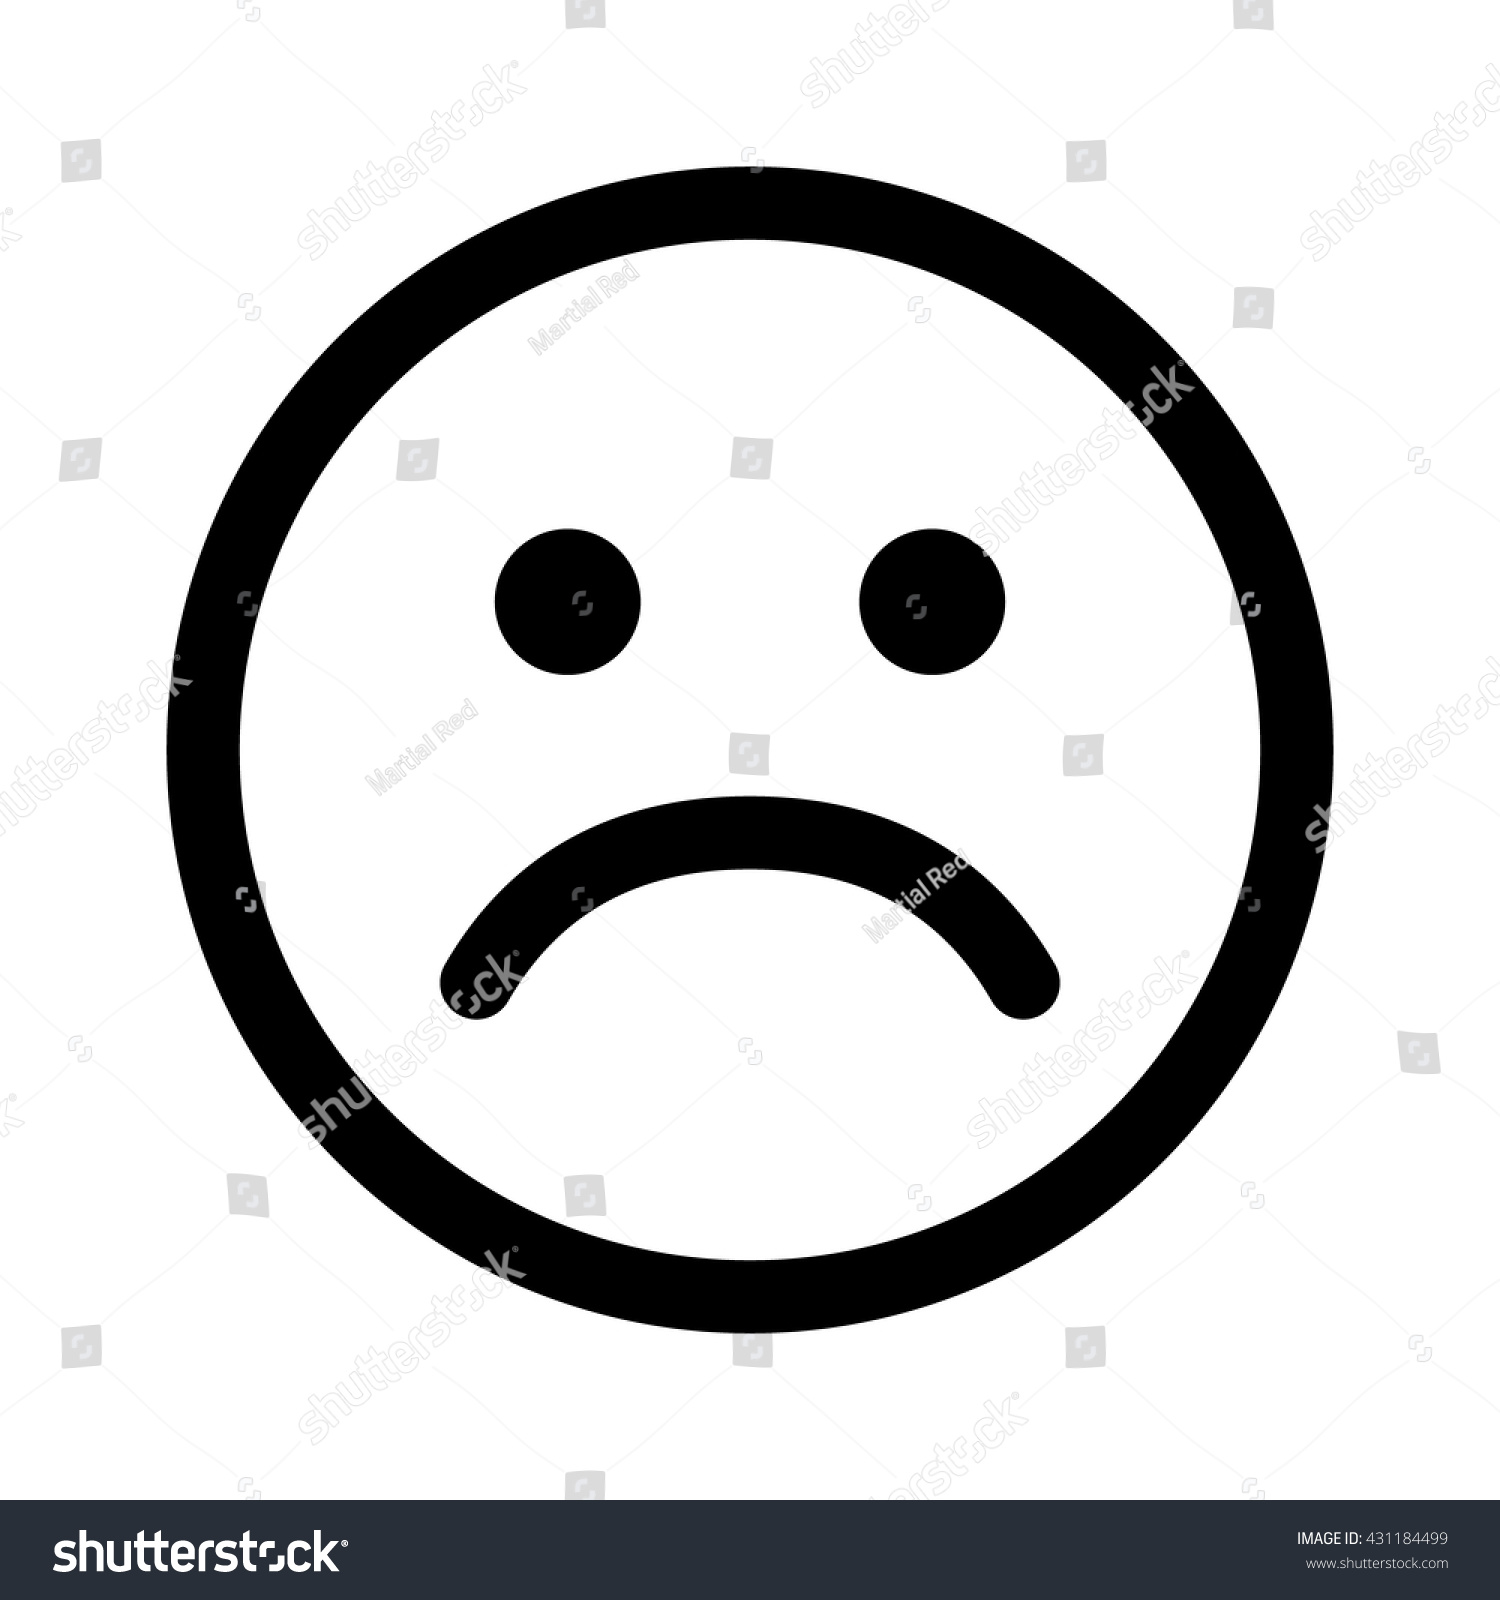 Line Drawing Of Sad Face : Sad smiley face emoticon line art icon for apps and